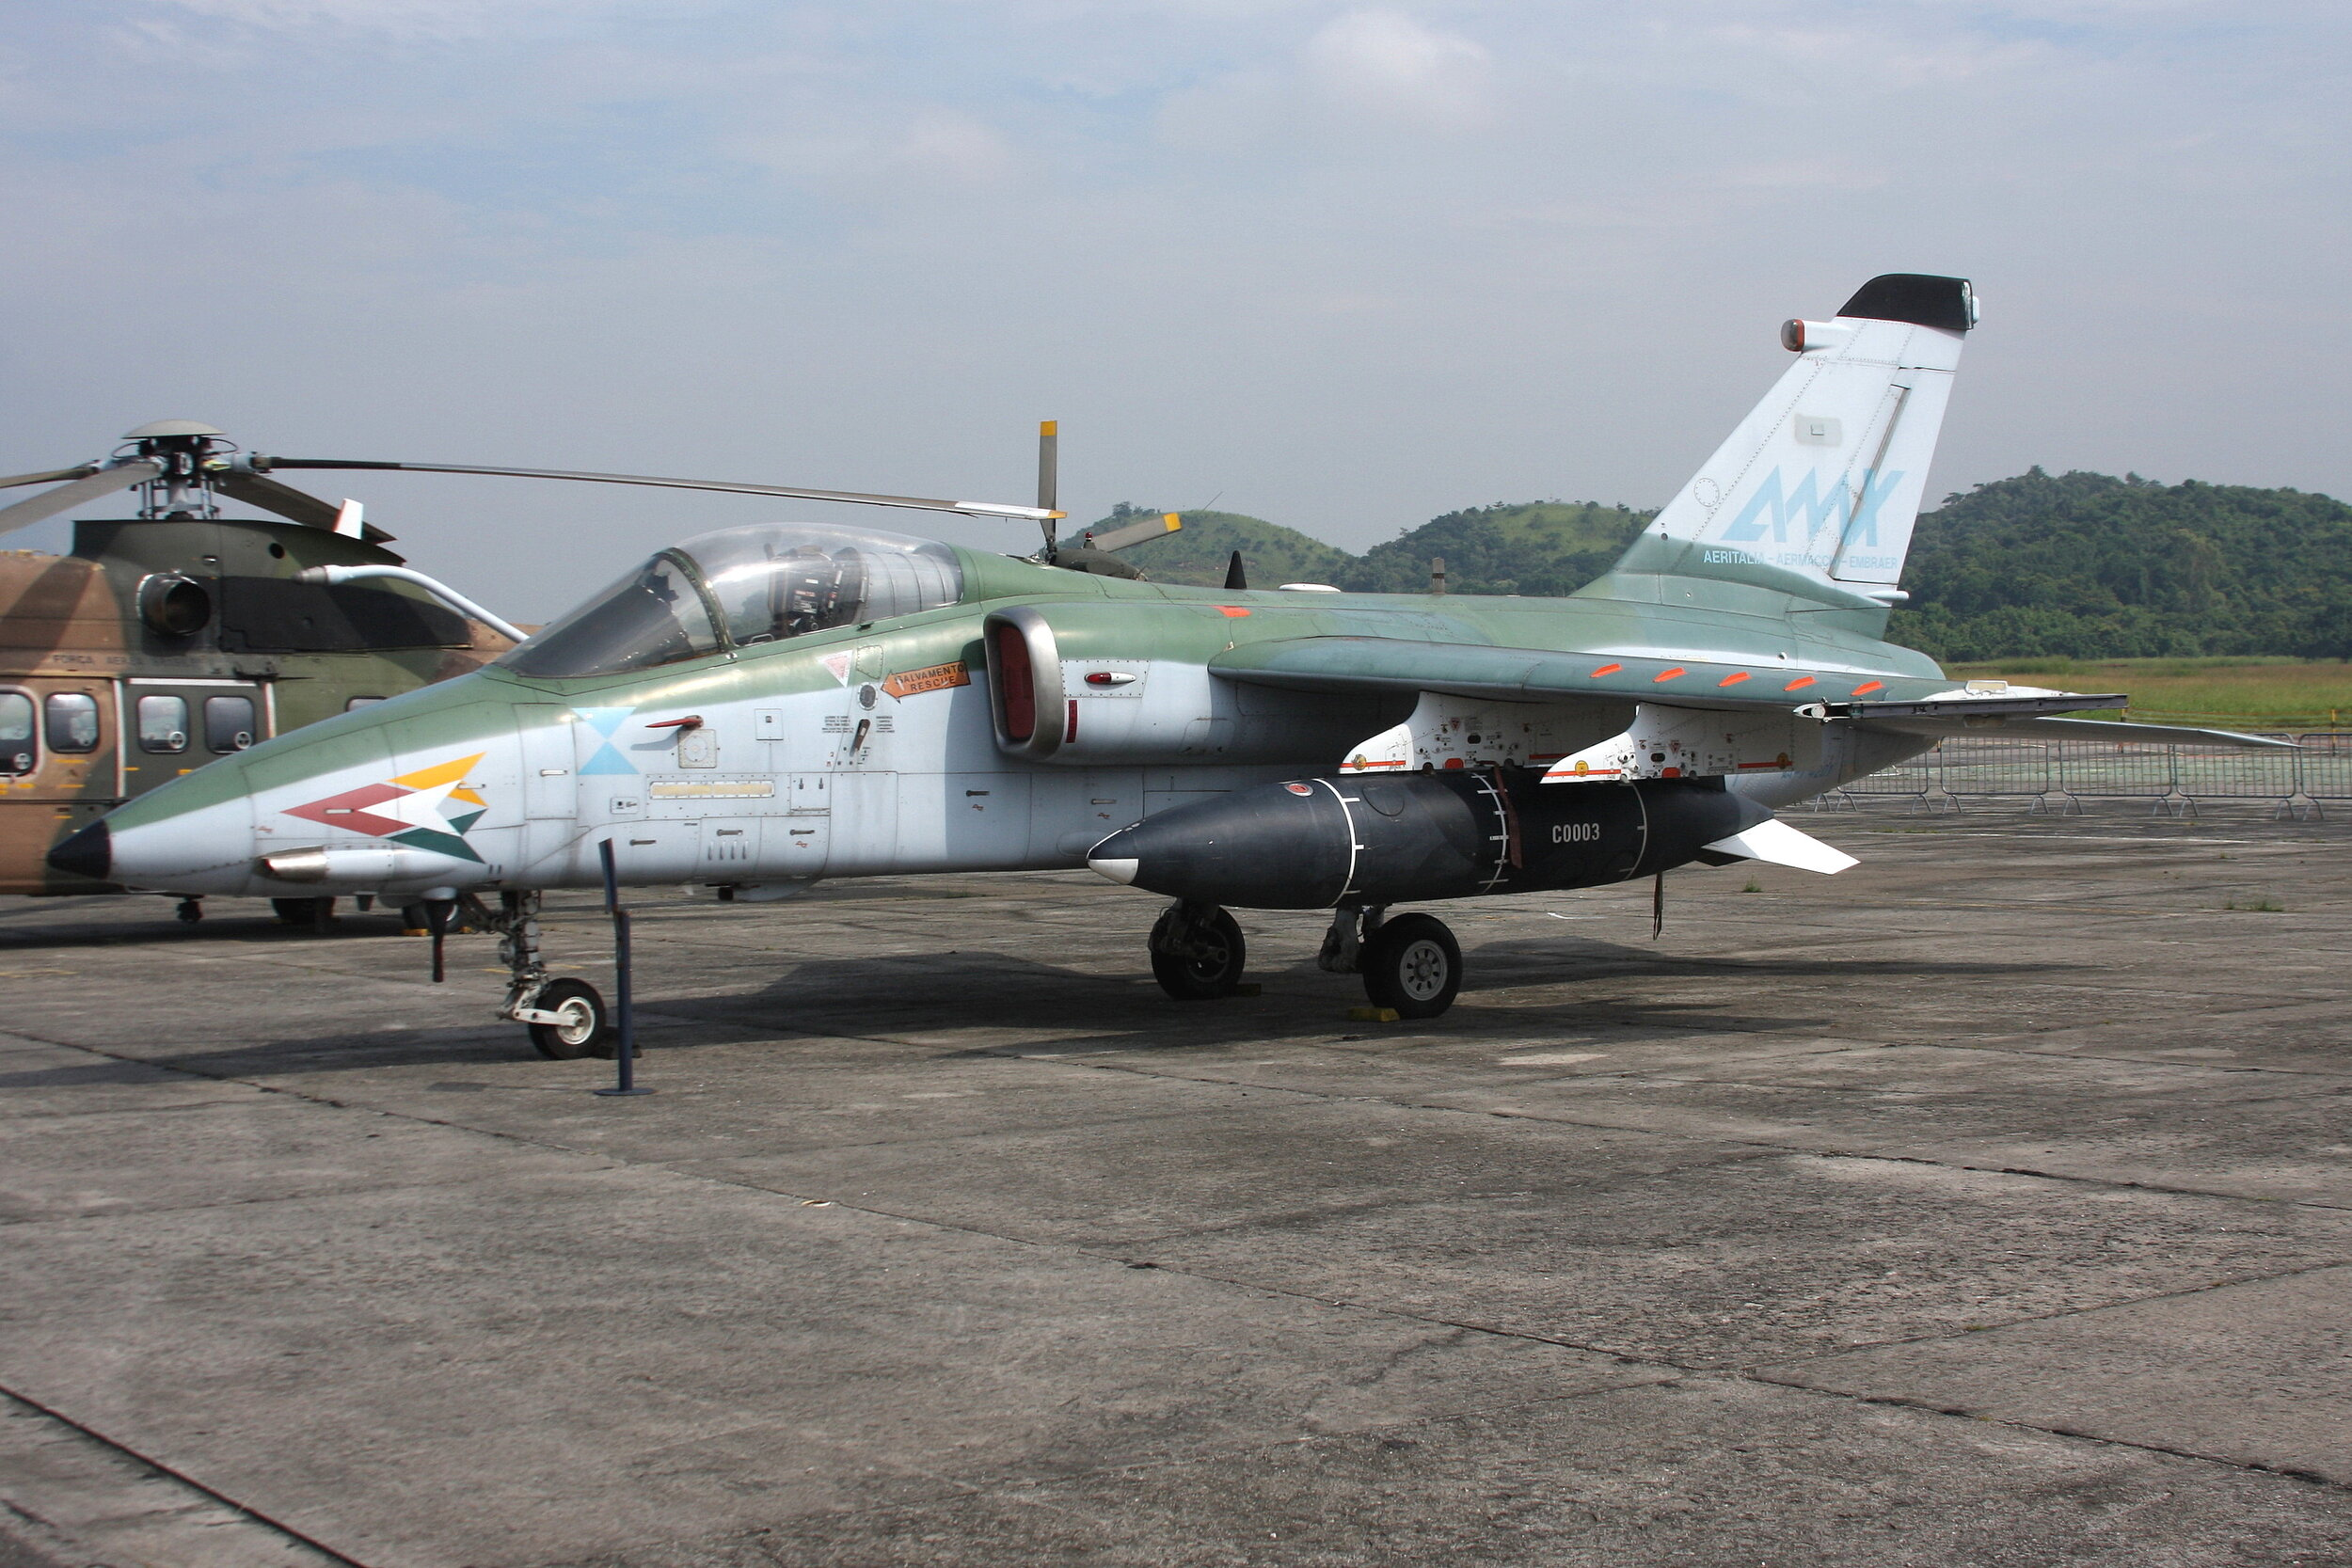 FAB4201 Brasil Air Force Alenia/Aermacchi/Embraer AMX on display at Museu Aeroespacial Rio De Janeiro taken 2nd May 2019 by John Wood